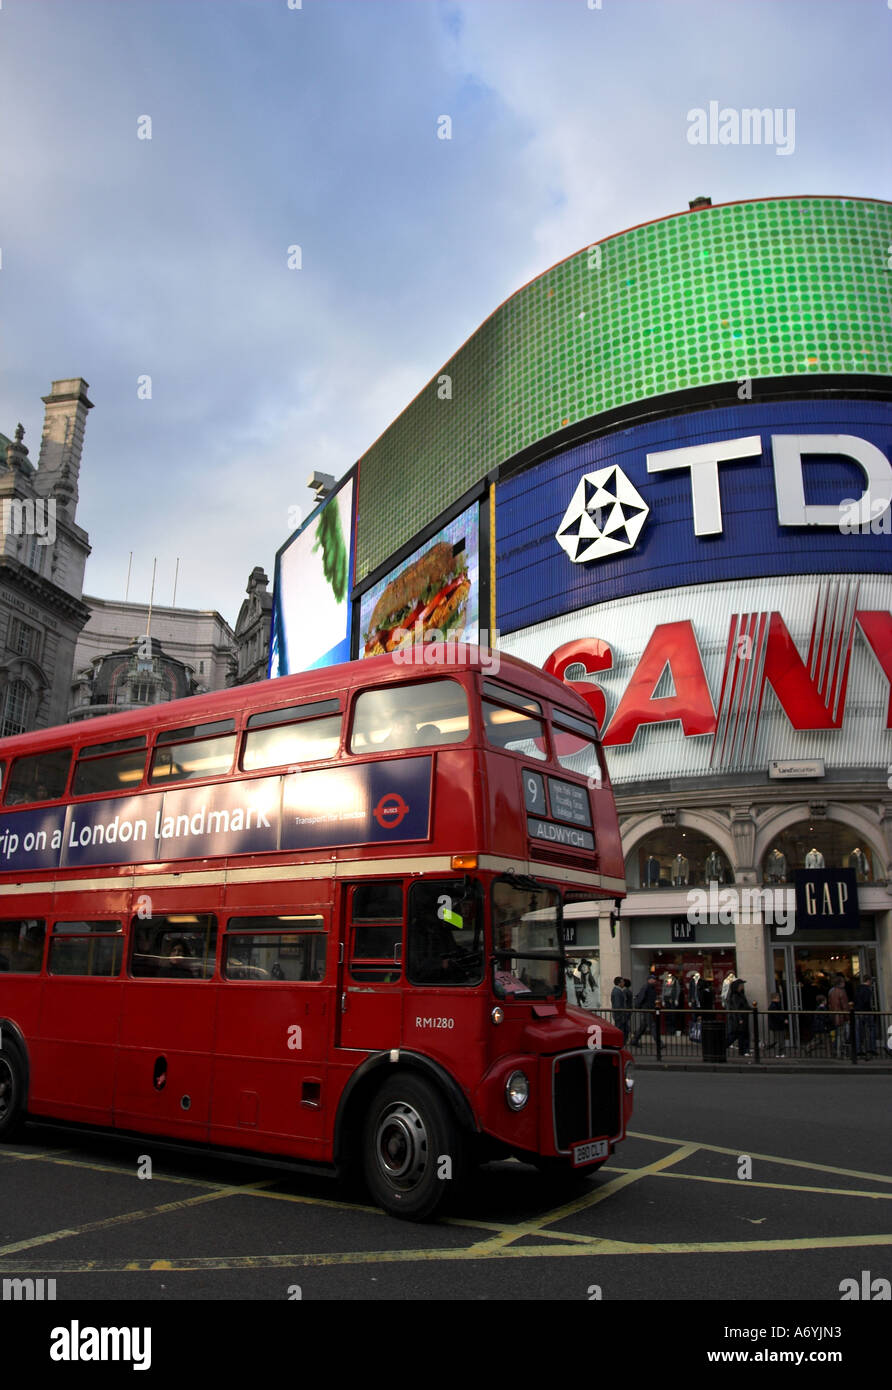 Picadilly Circus, London with bright billboards and old red double decker bus in foreground. - Stock Image